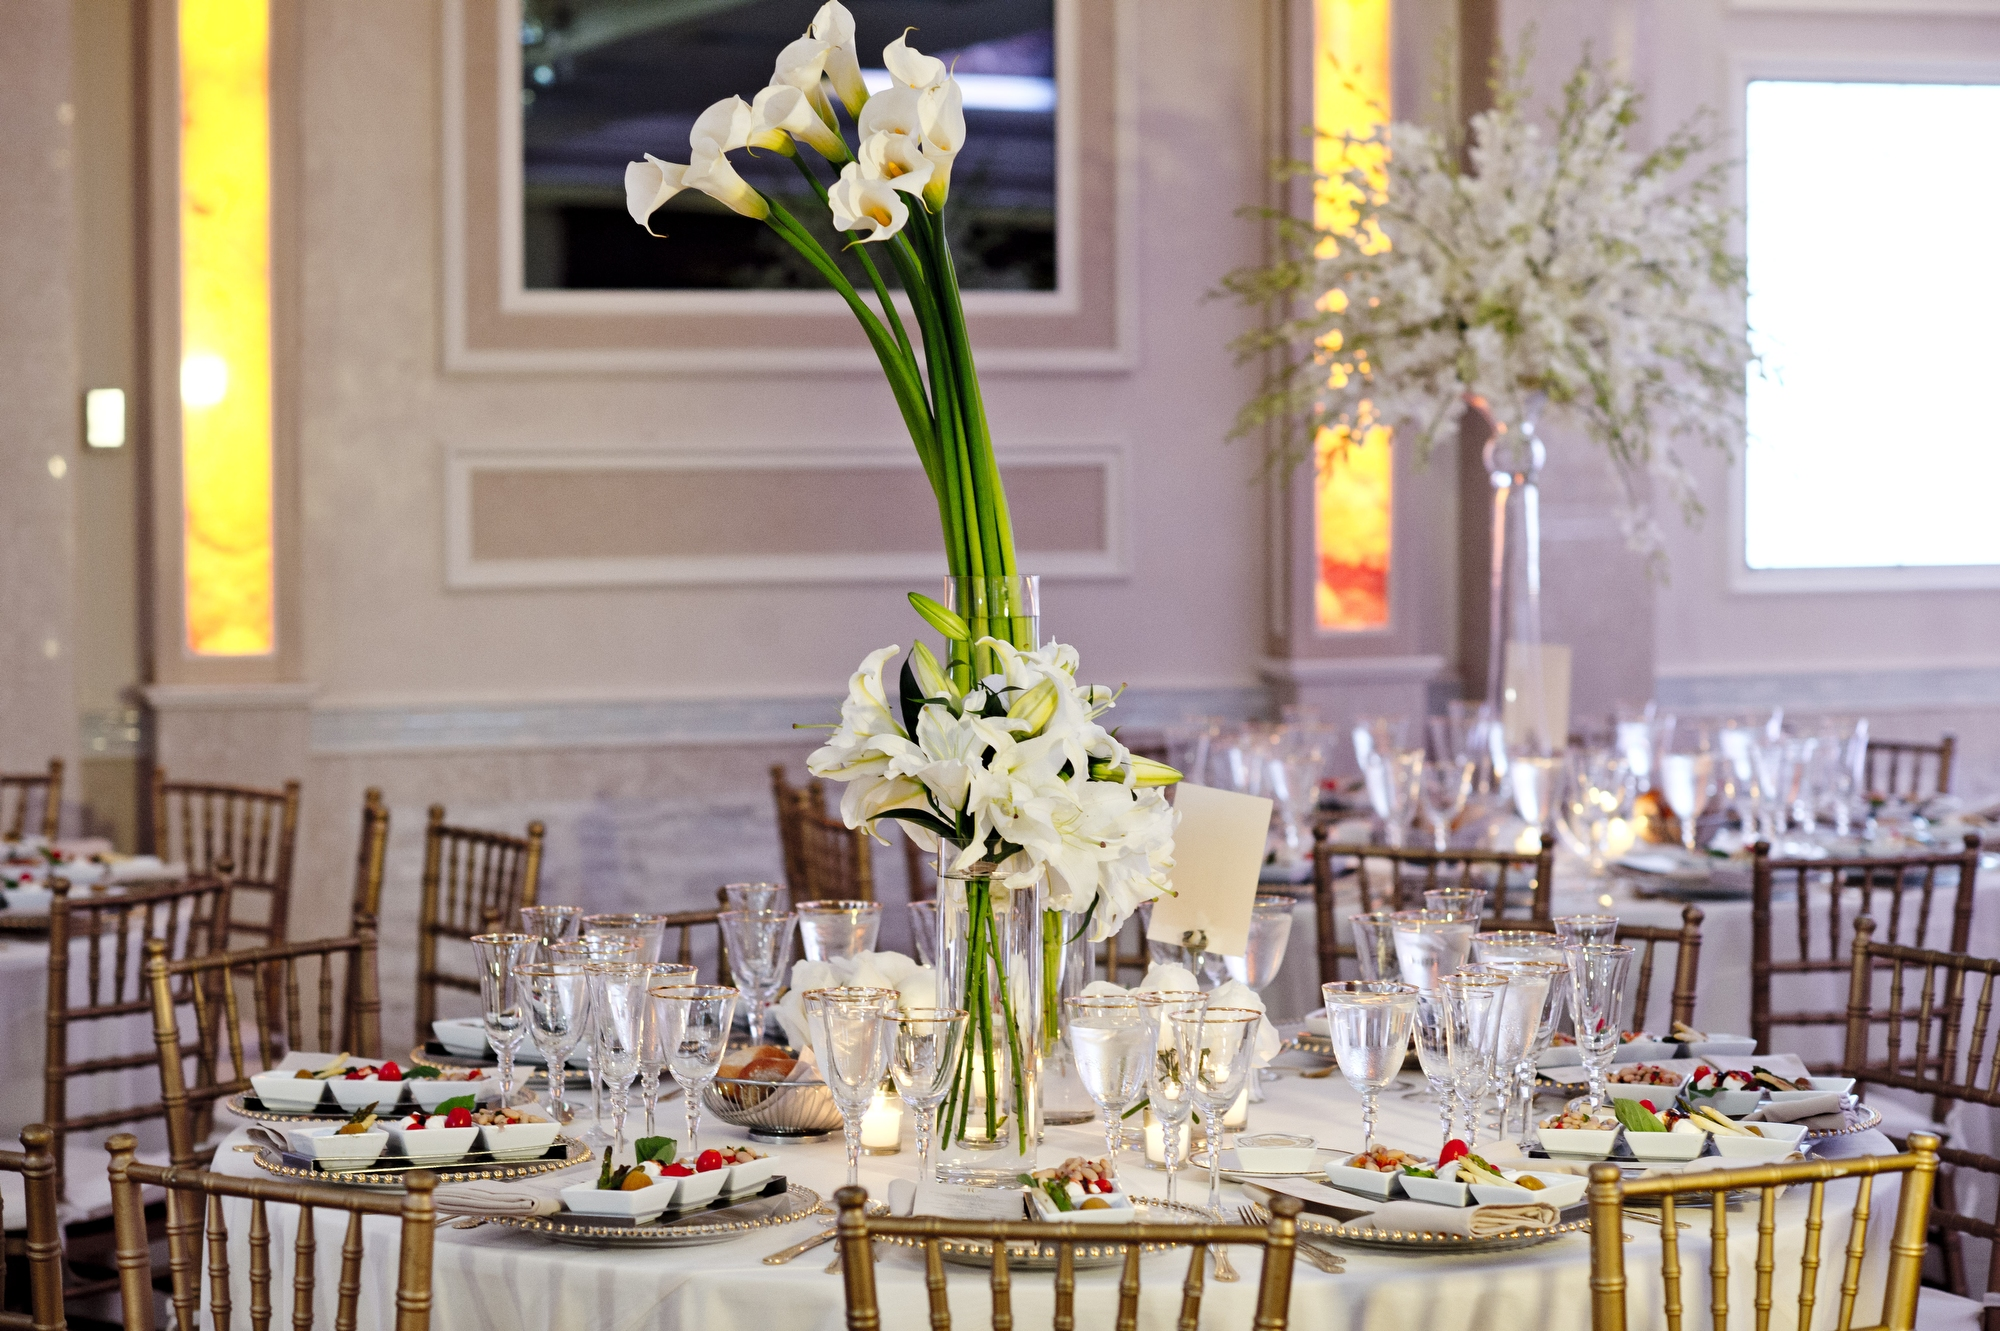 NYC wedding dulce dreams events-33